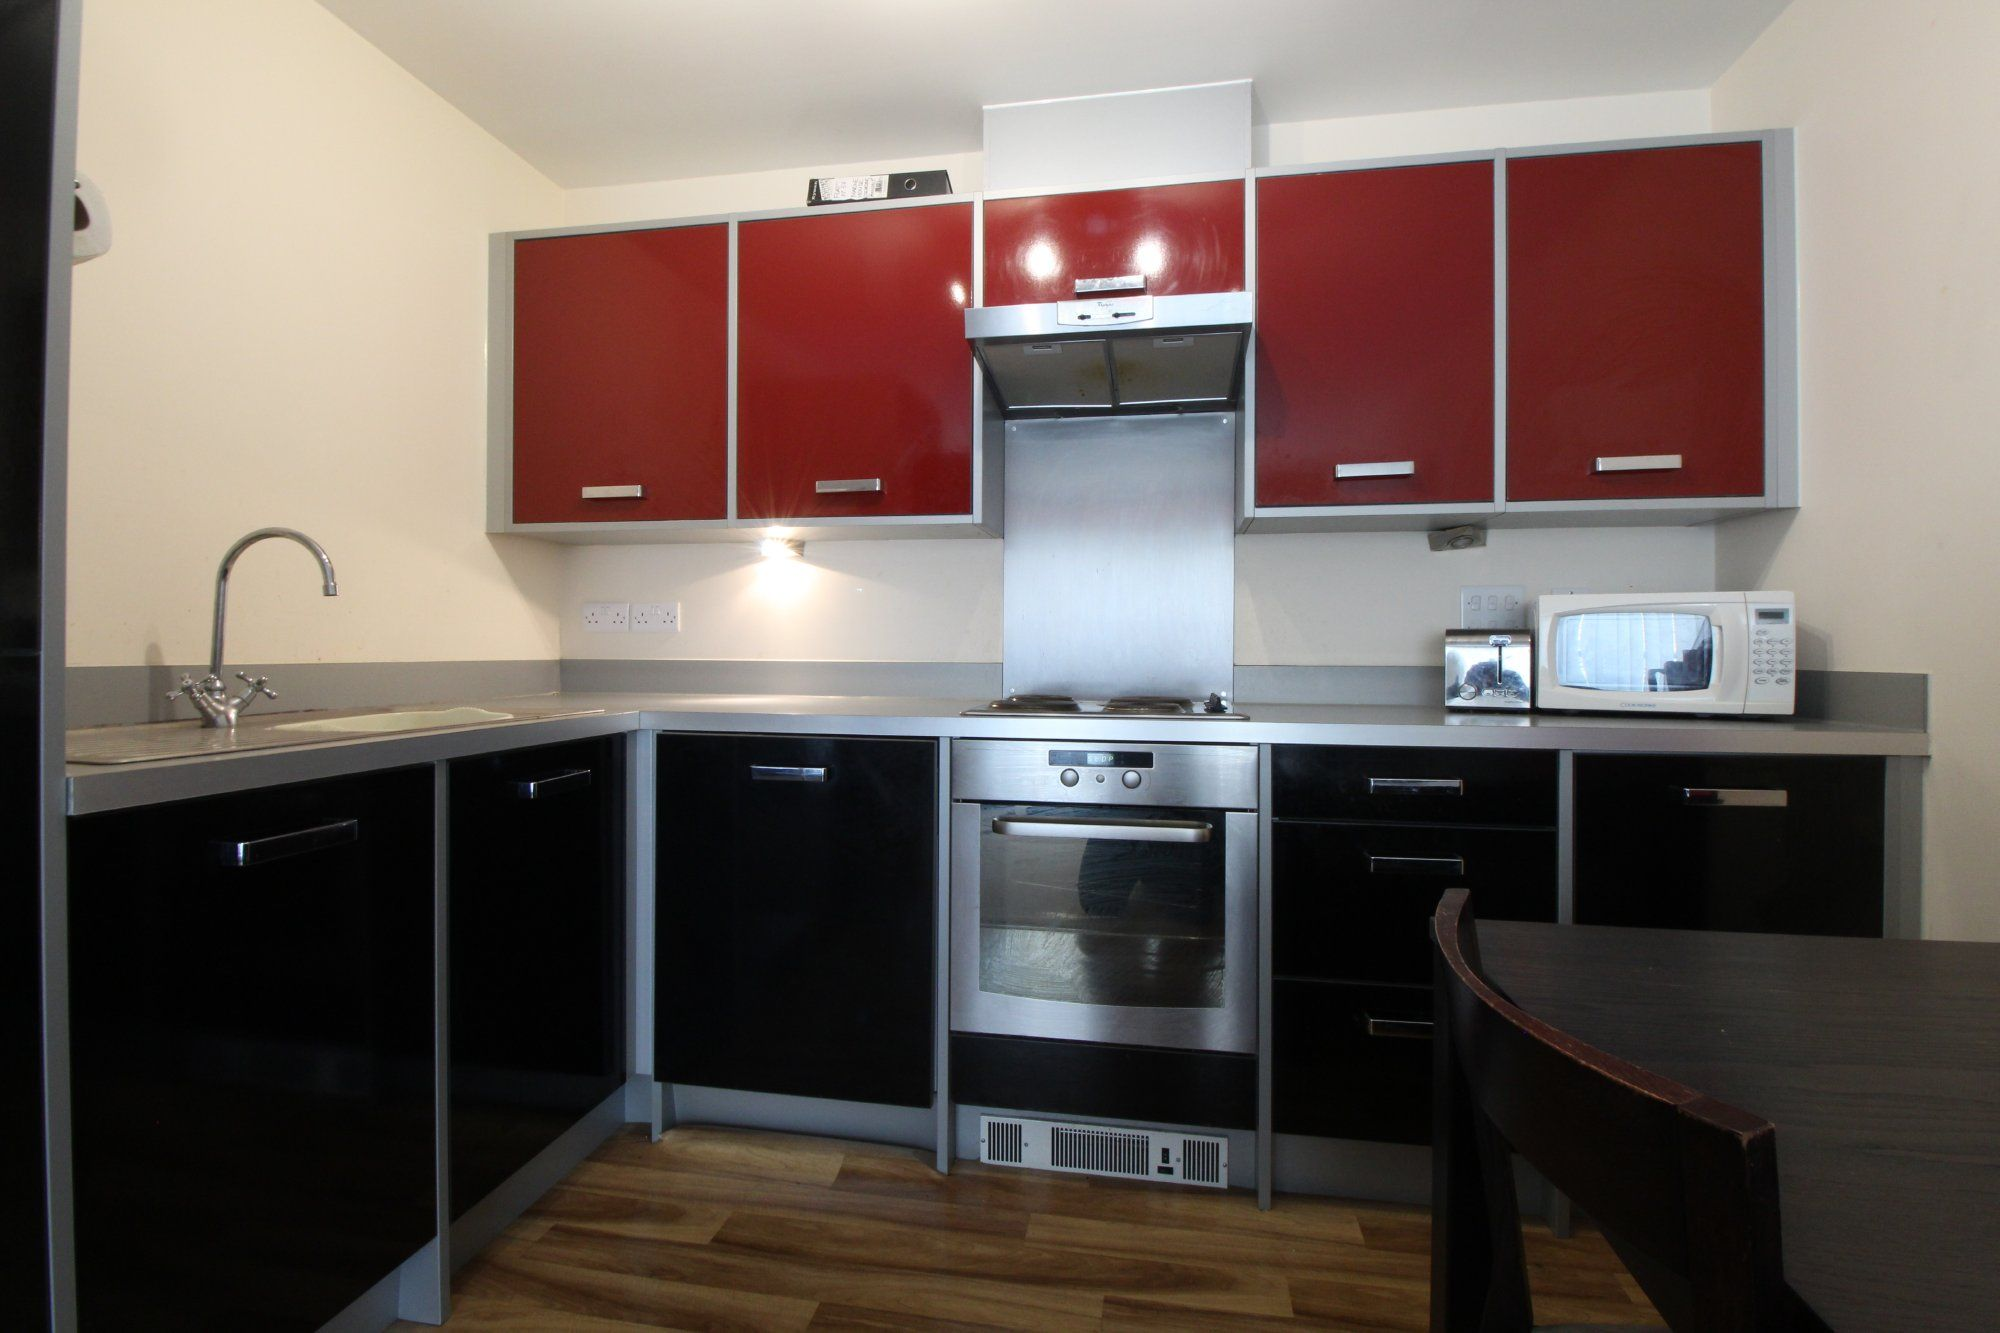 Property photo 1 of 8. Kitchen/Diner